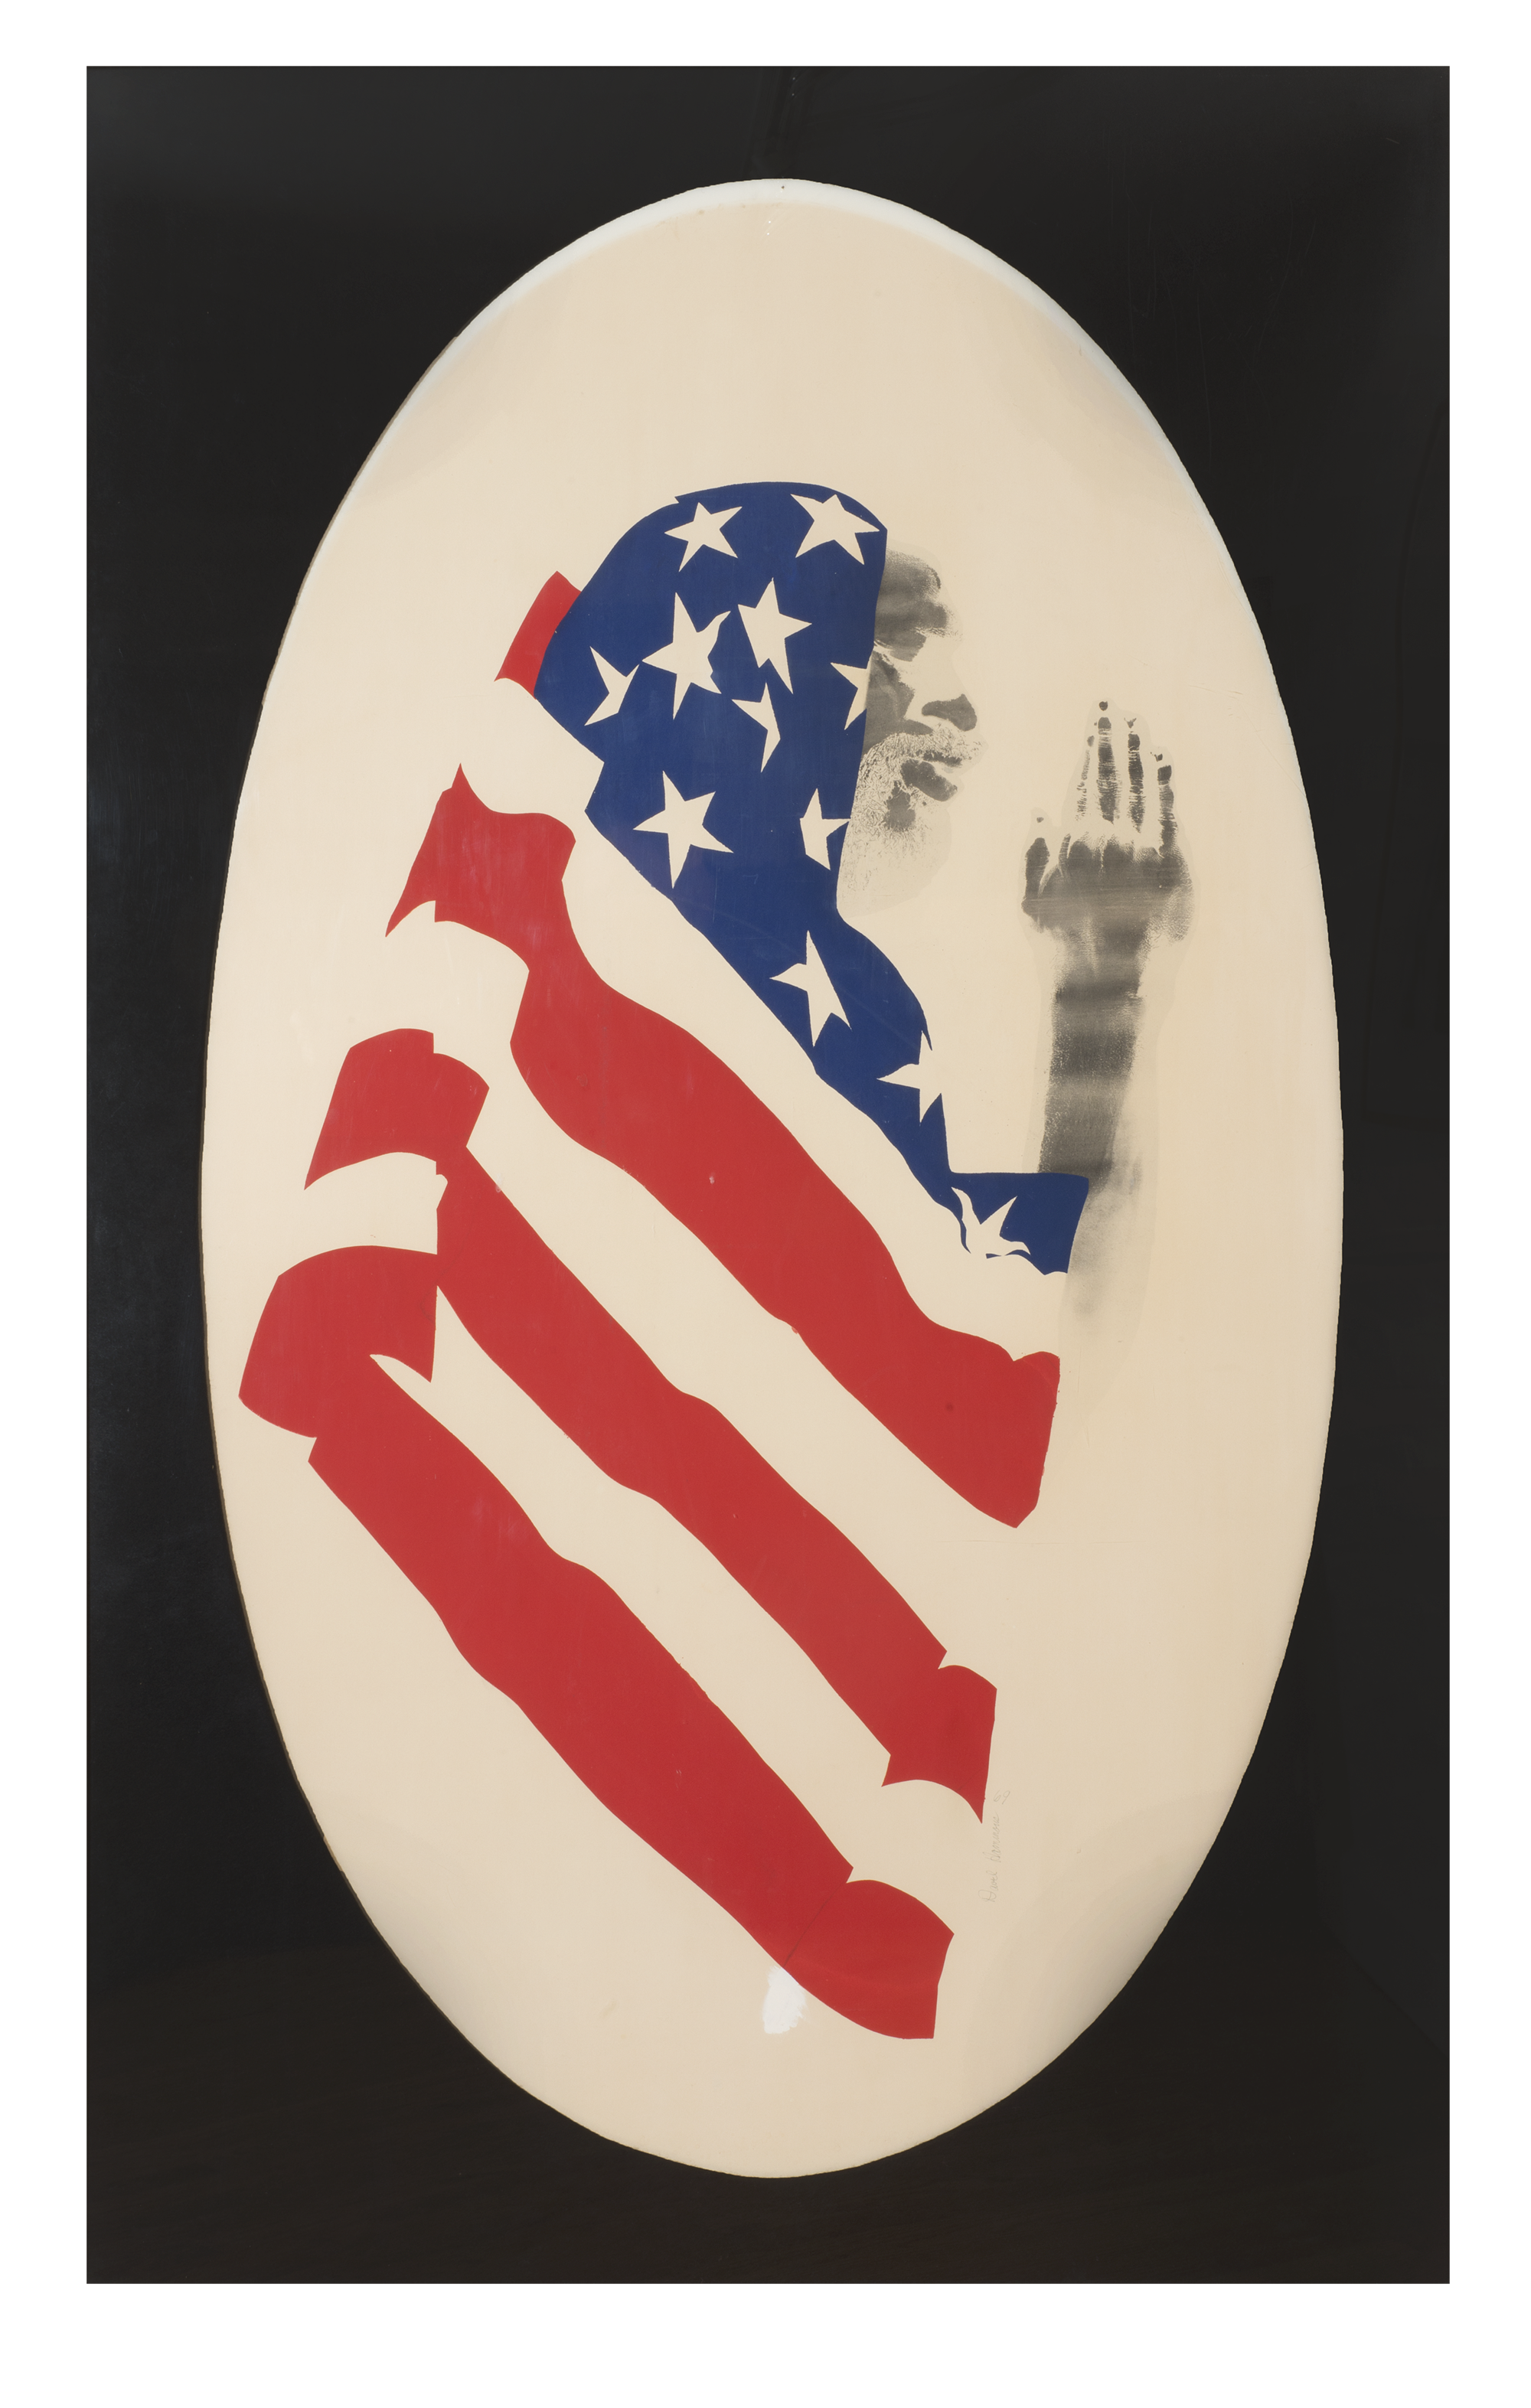 David Hammons, Pray for America, 1974. Screenprint and pigment on paper, 60 1/2 x 30 inches (153.7 × 76.2 cm). The Museum of Modern Art, New York and The Studio Museum Harlem. Gift to The Museum of Modern Art and The Studio Museum in Harlem by the Hudgins Family in honor of David Rockefeller on his 100th birthday, 2015.